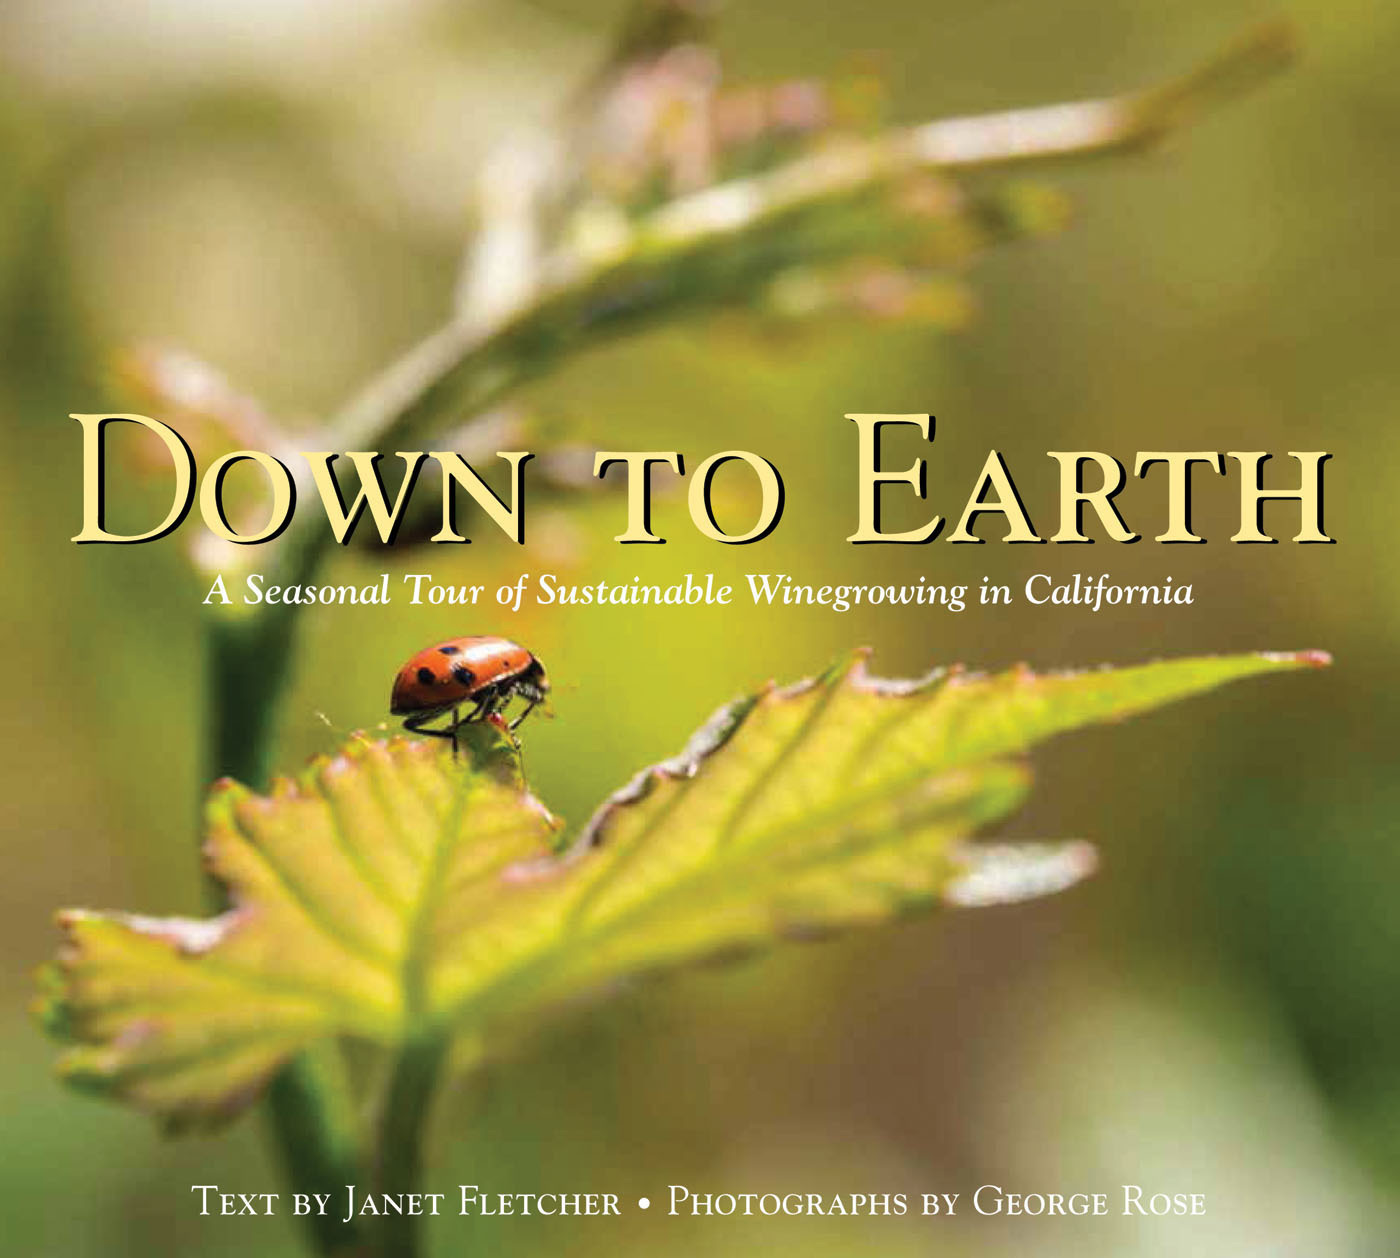 Wine Institute Publishes Book On California Sustainable Winegrowing